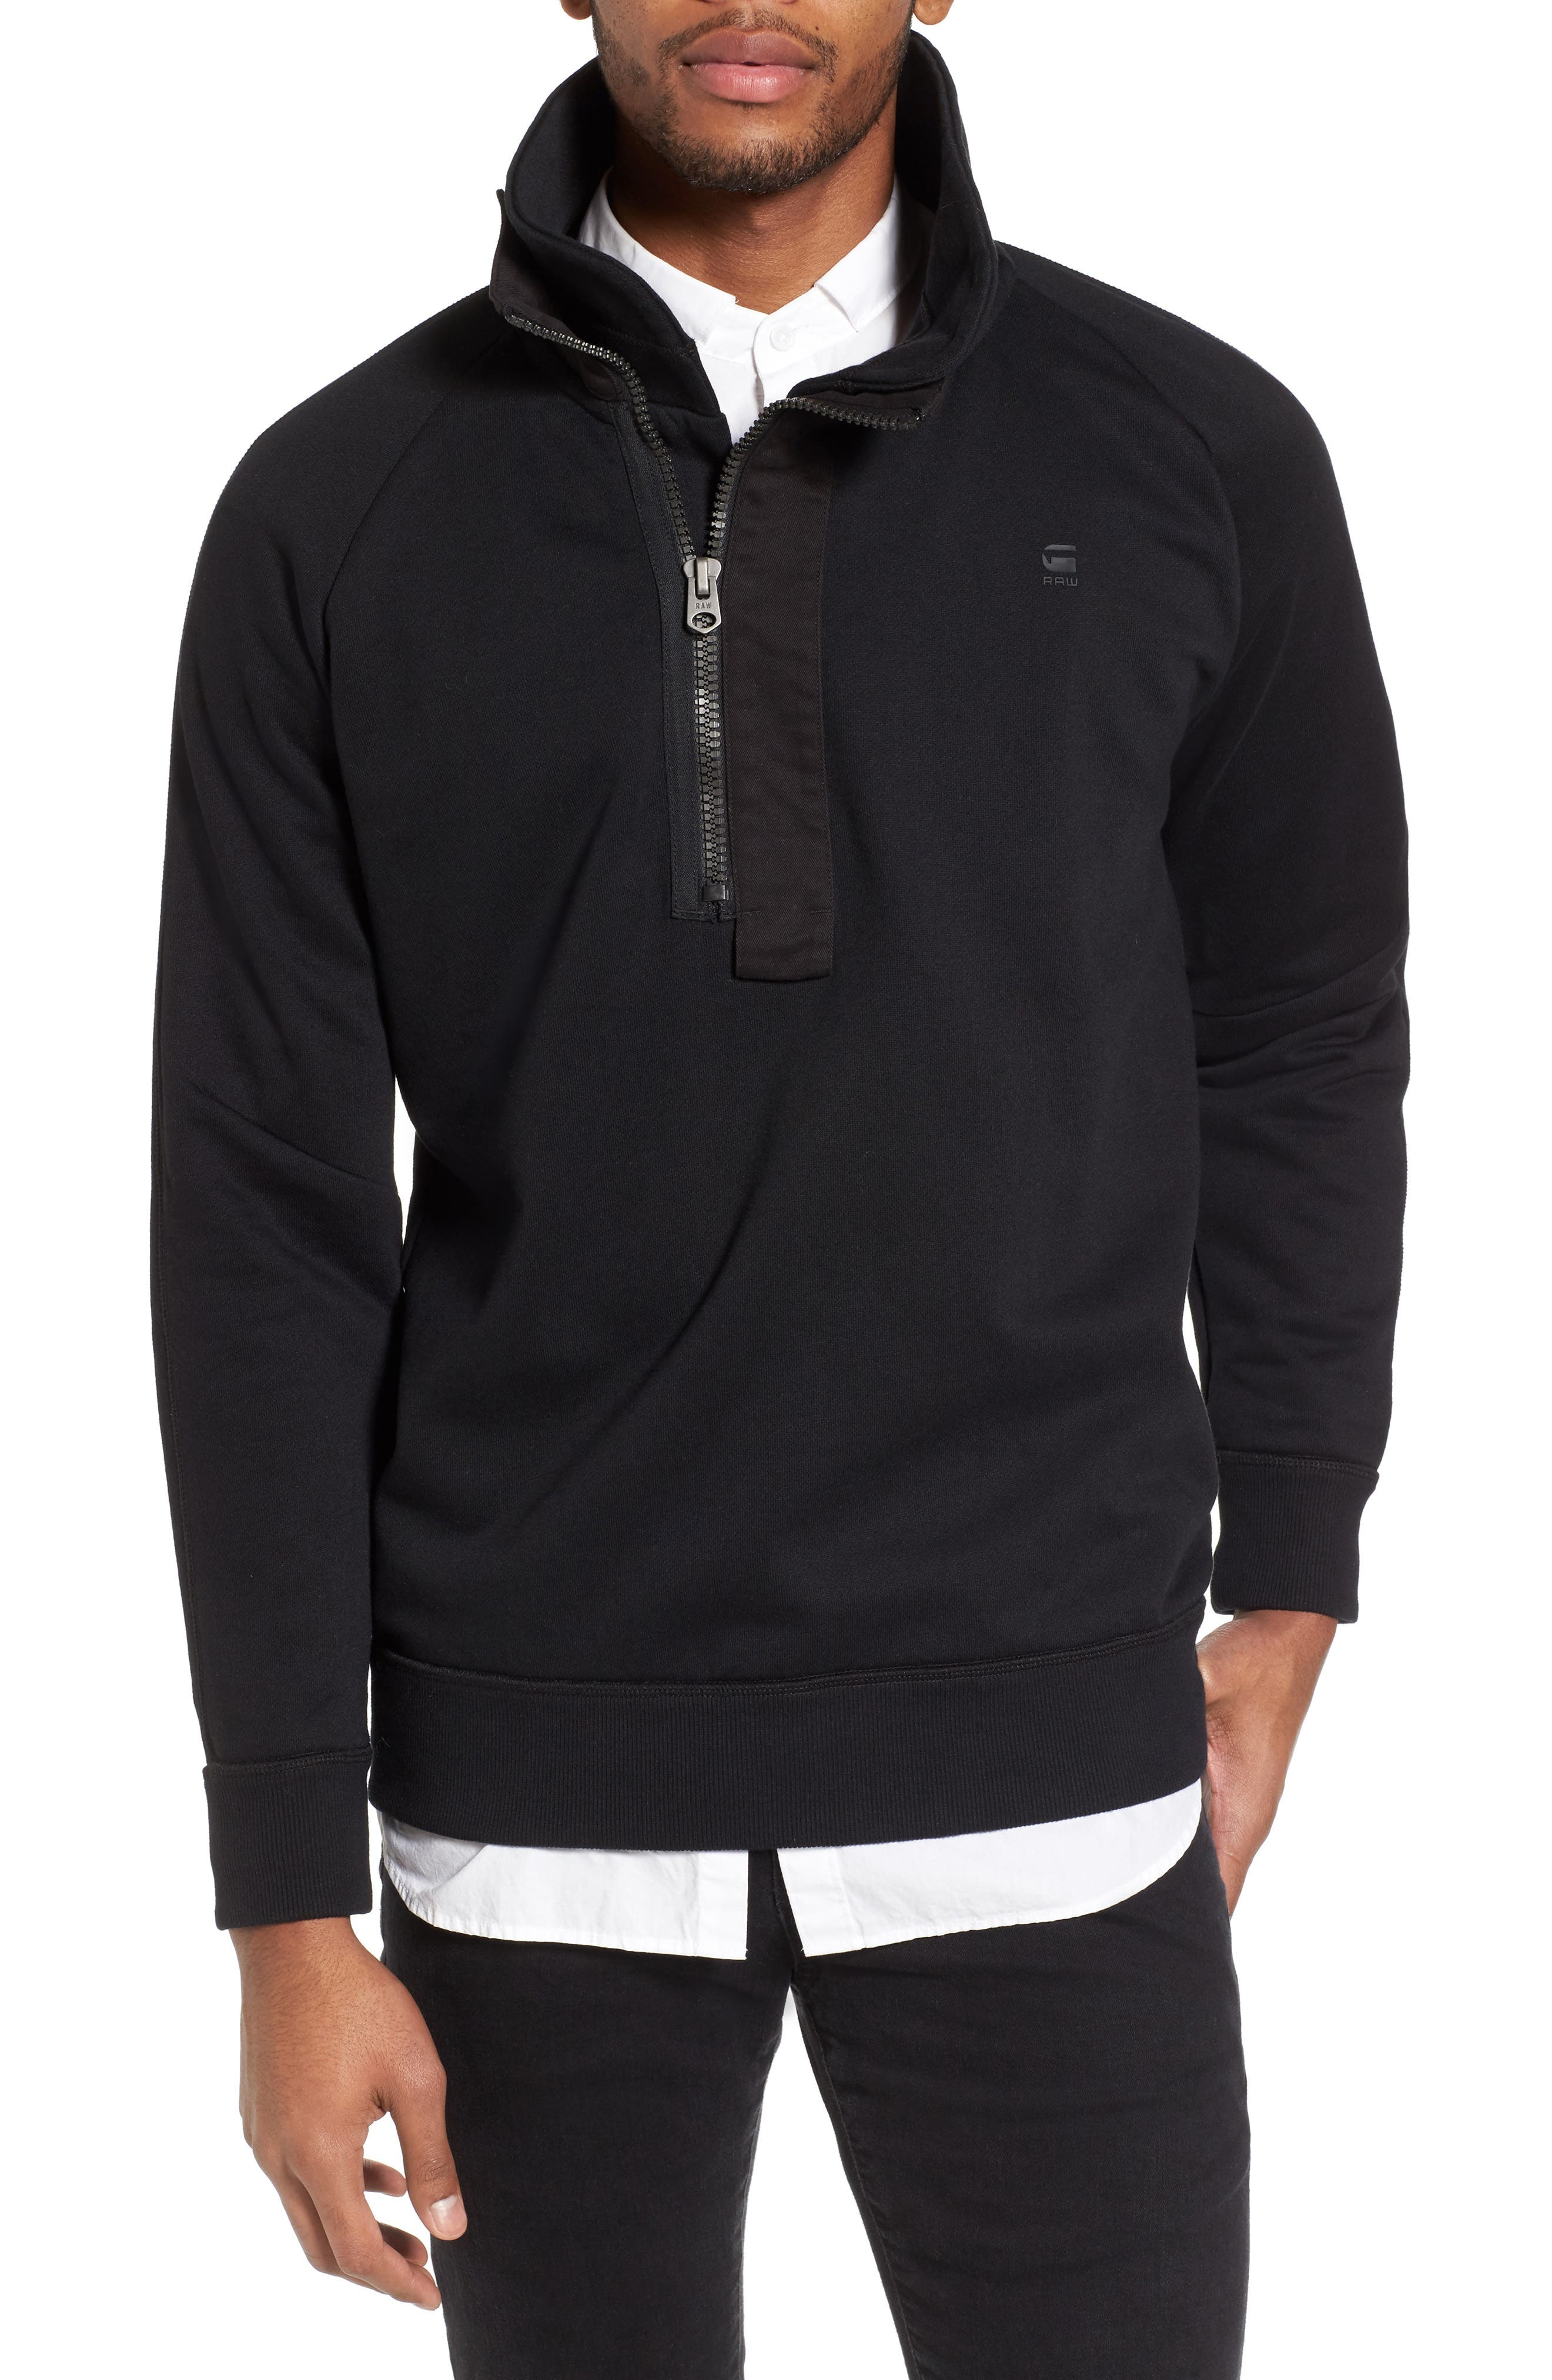 Empral Quarter Zip Pullover,                             Main thumbnail 1, color,                             Dark Black